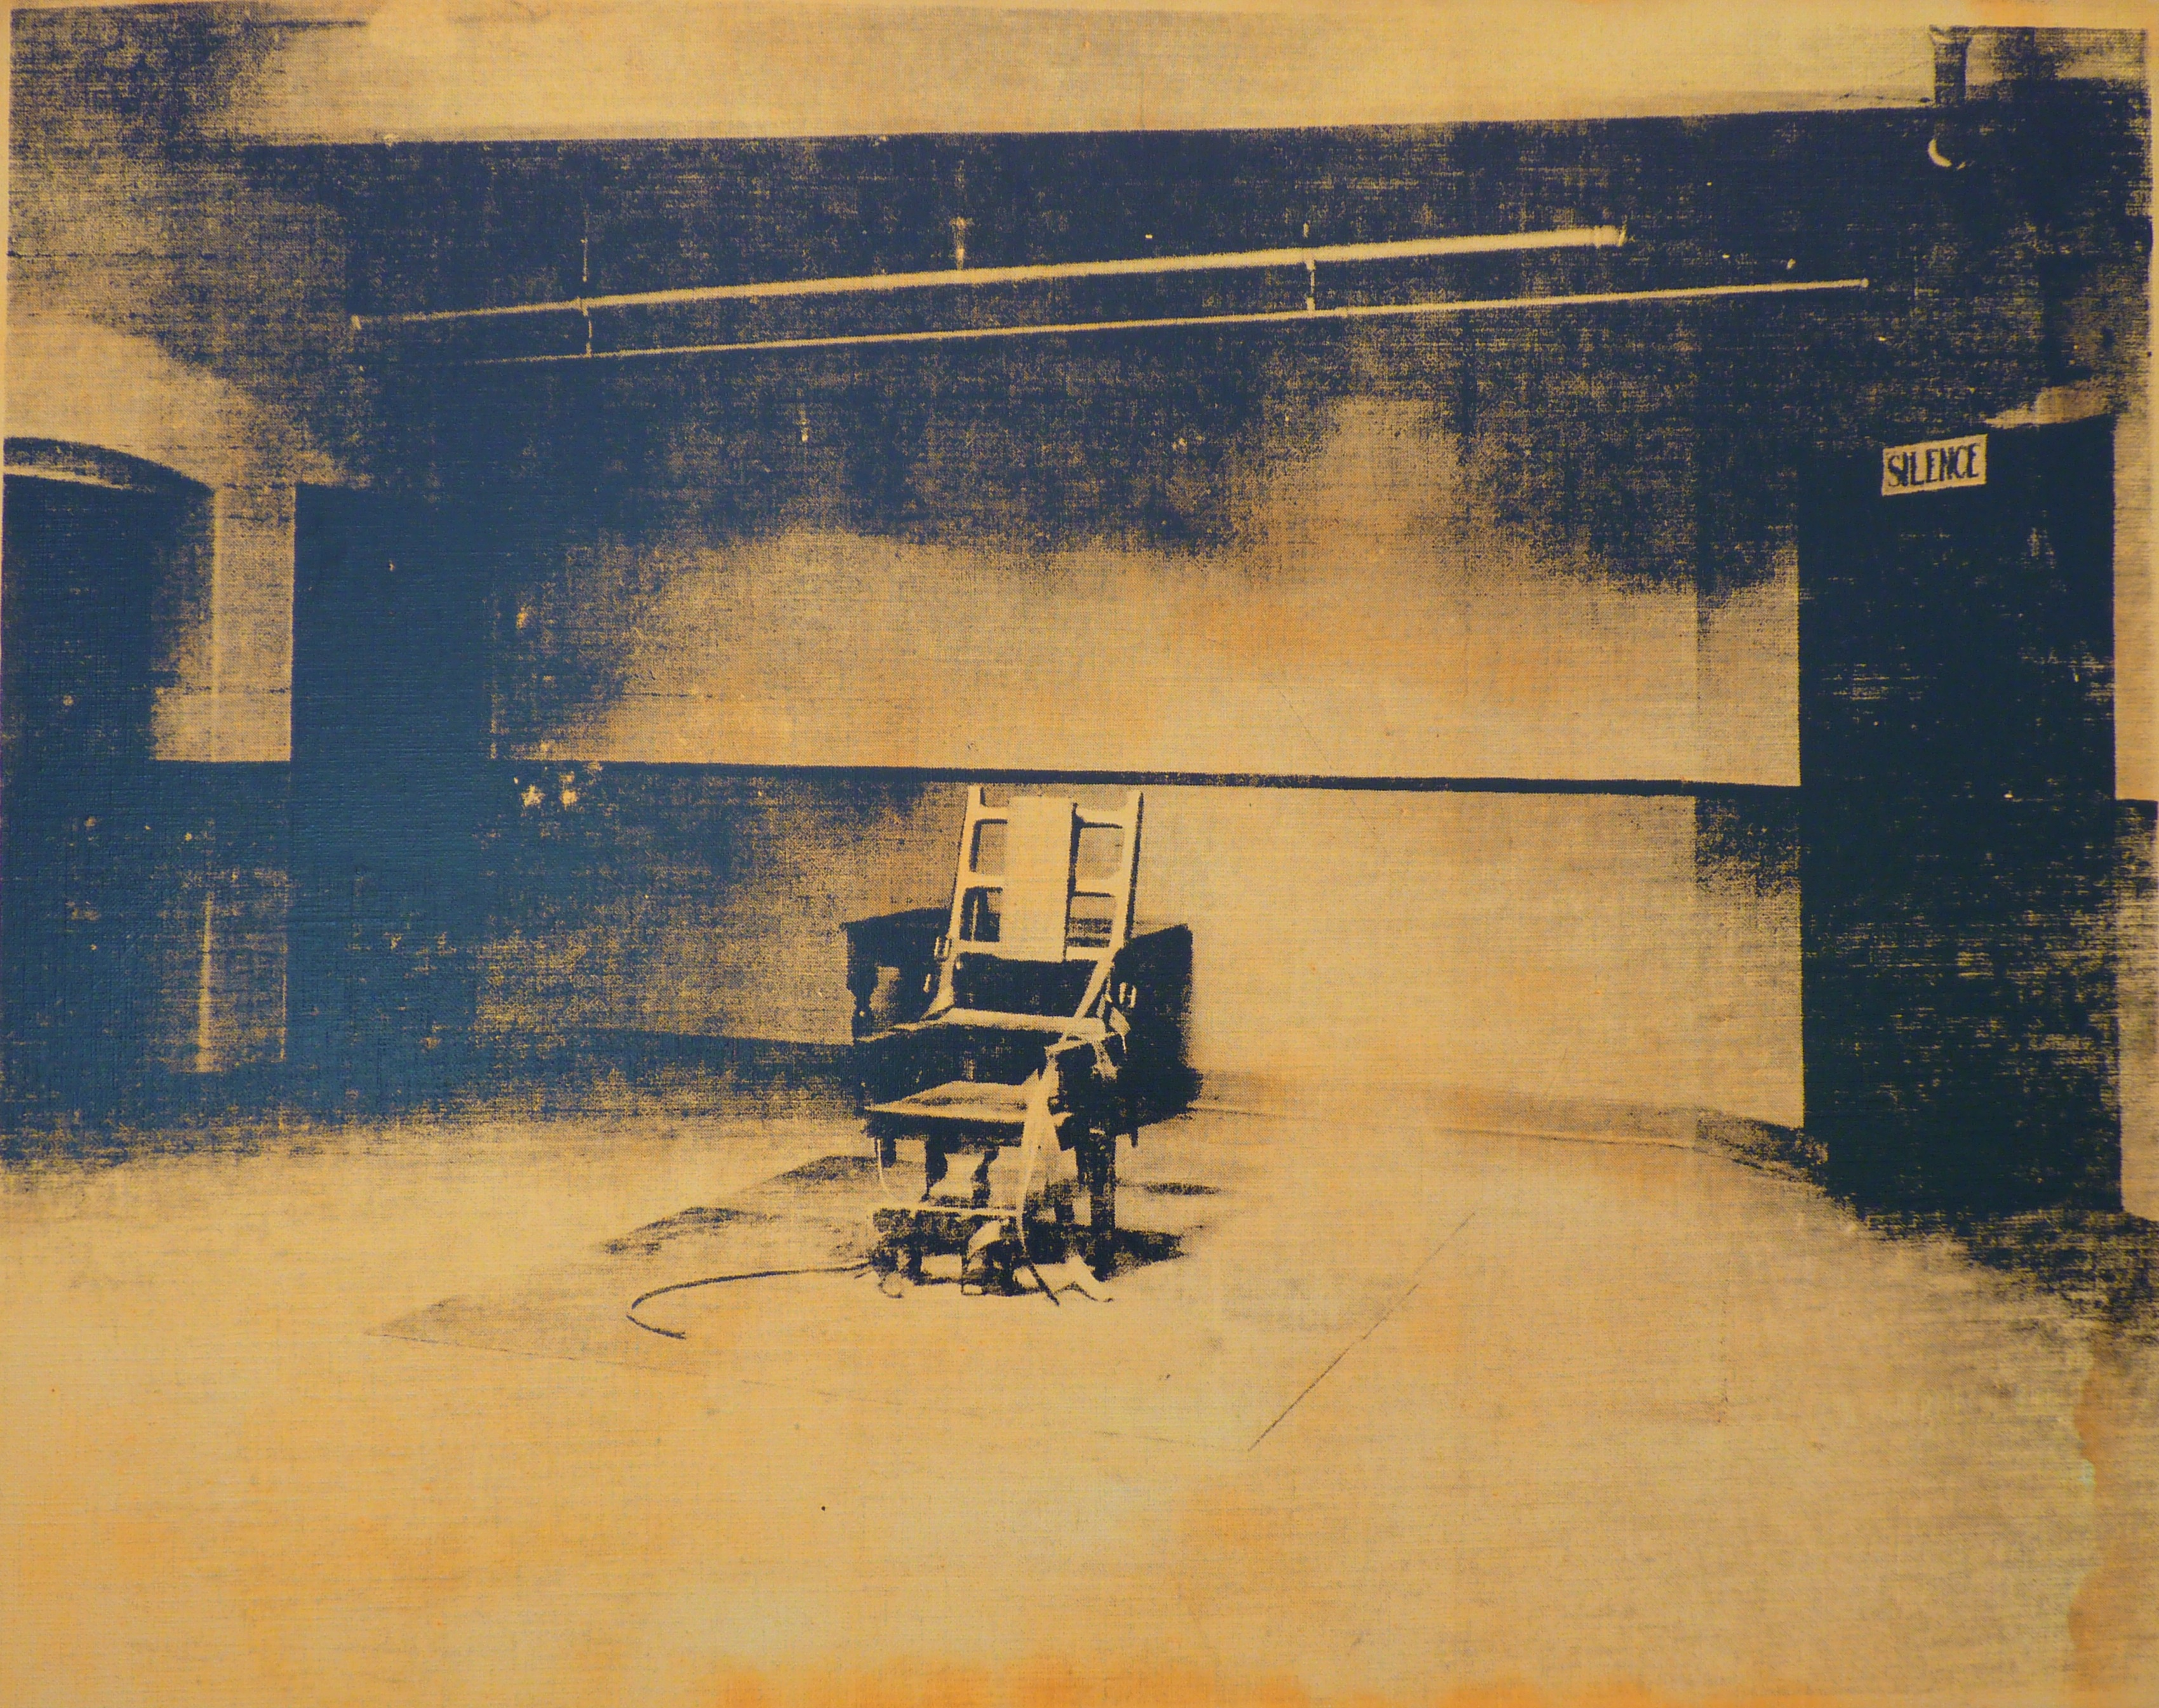 Electric chair andy warhol - Andy Warhol Electric Chair